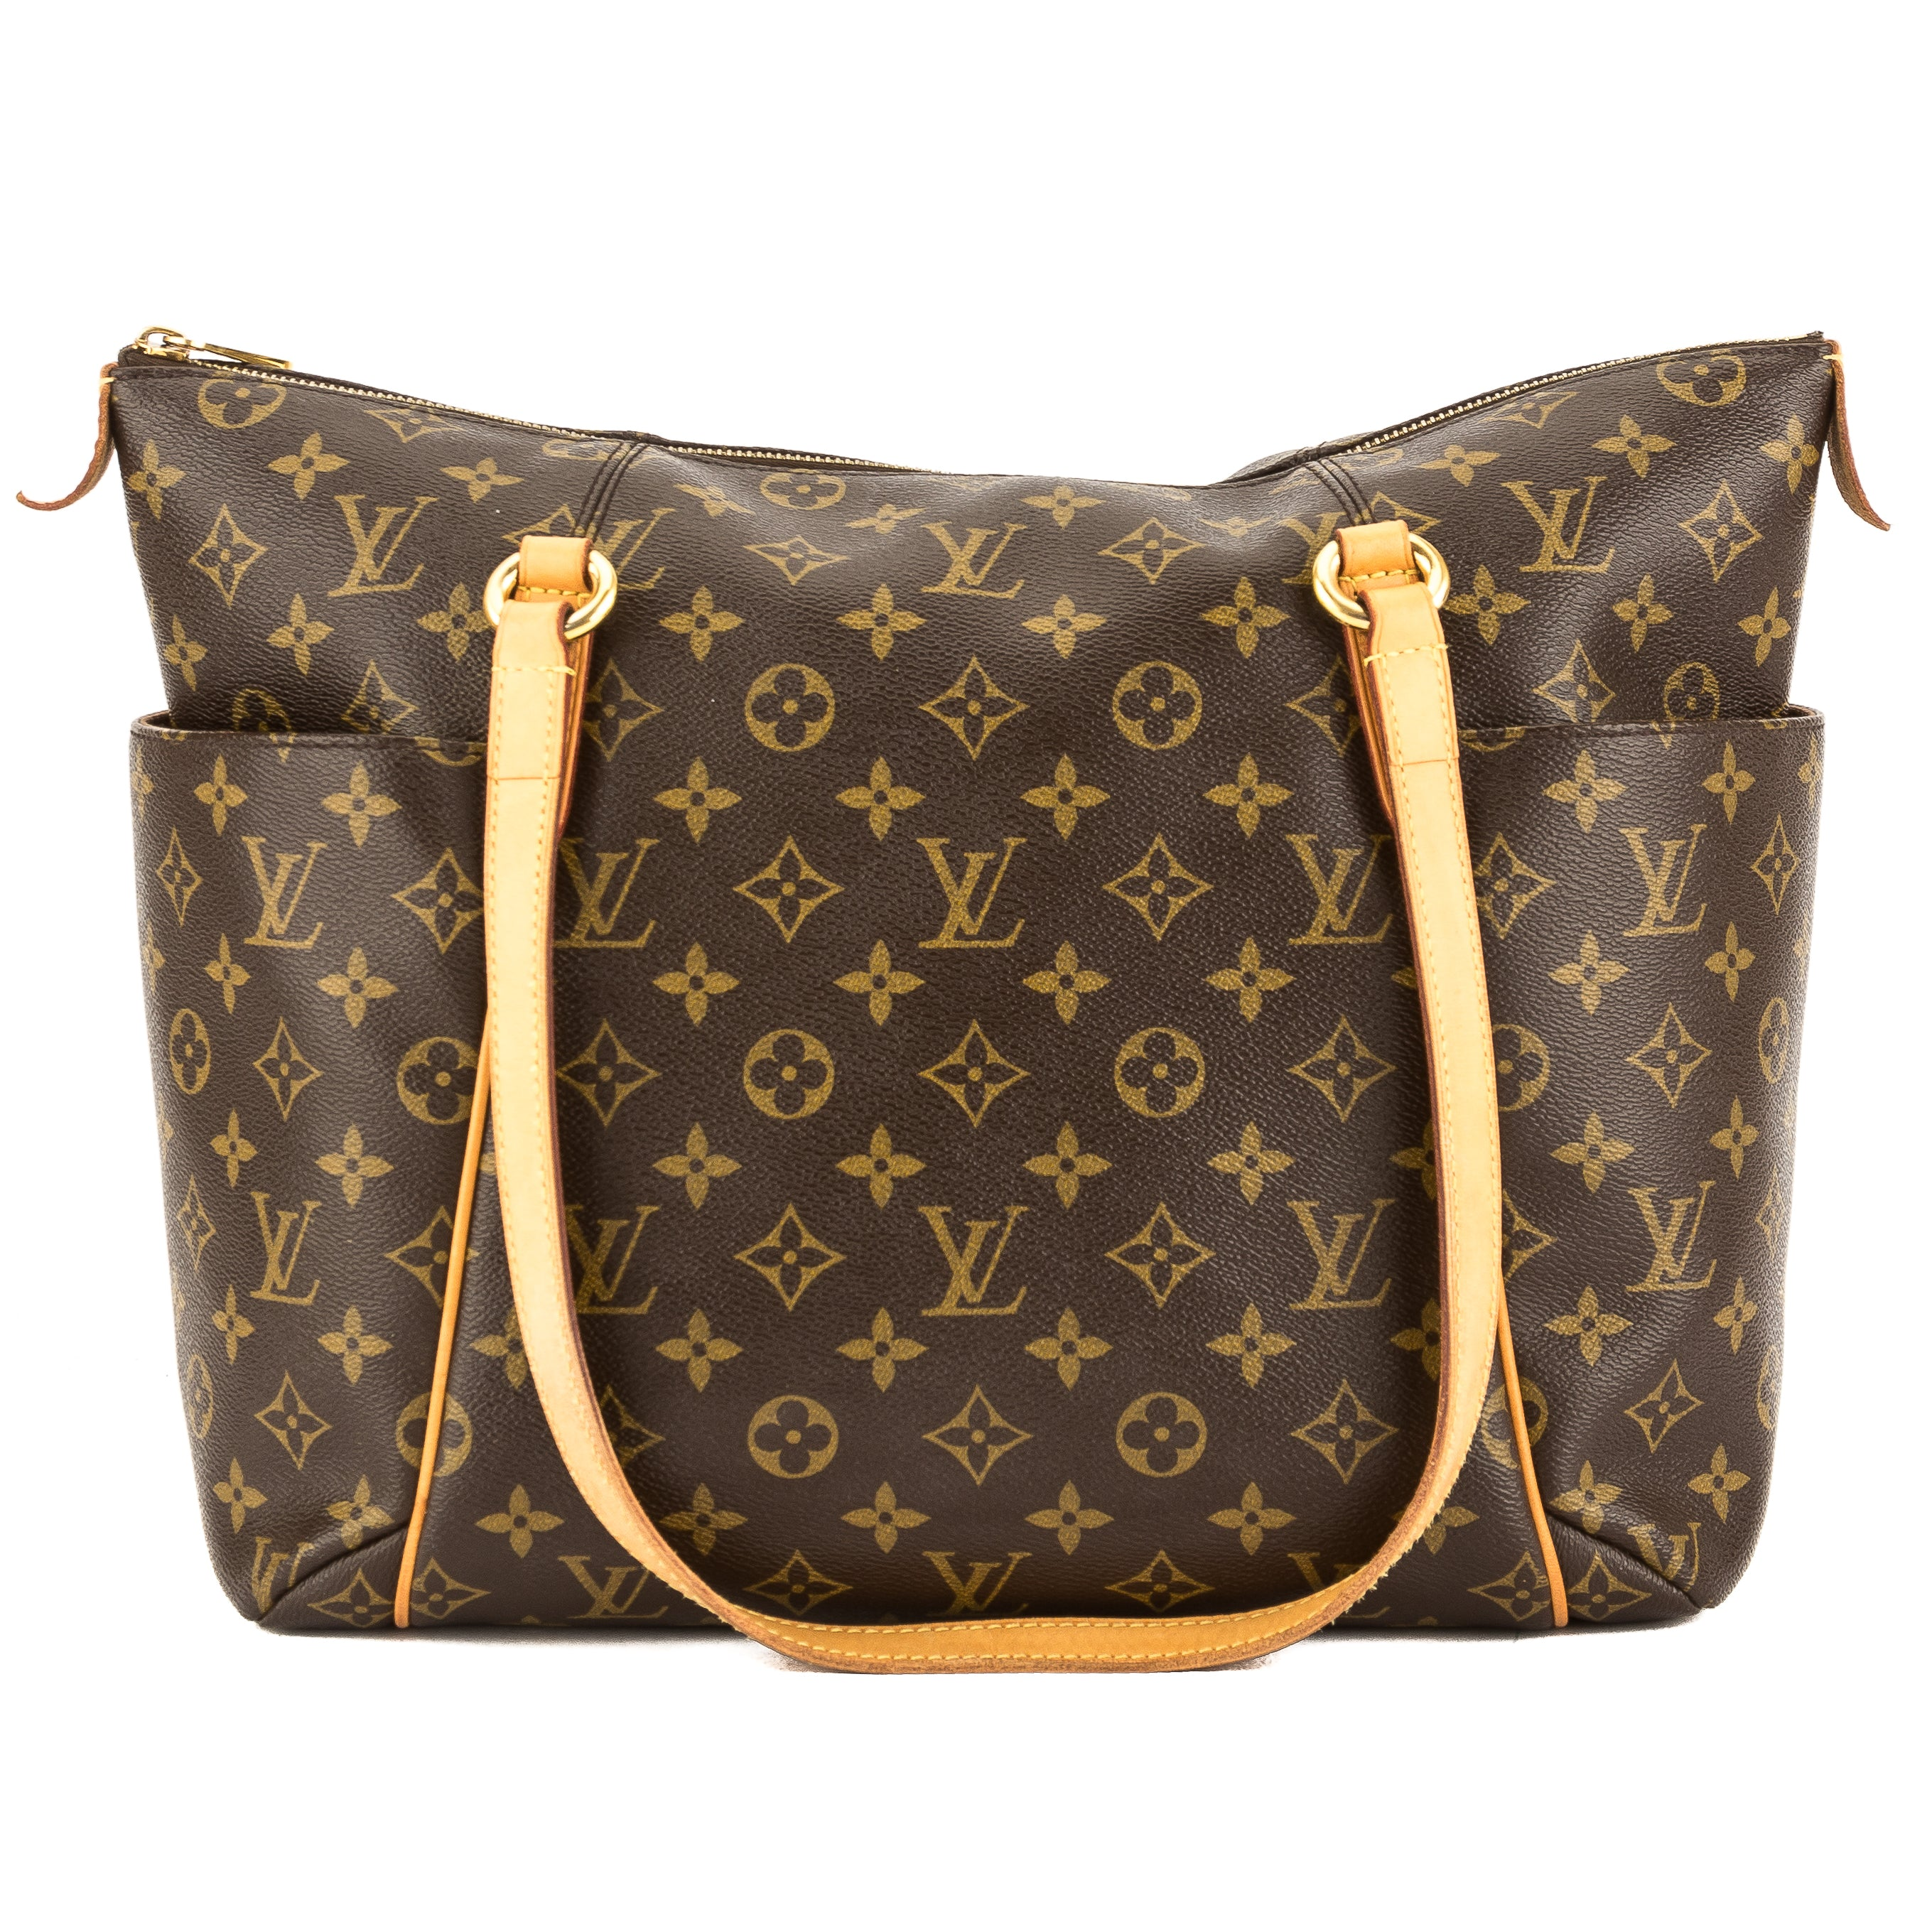 fbf93cb58100 Louis Vuitton Monogram Canvas Totally MM Bag (Pre Owned) - 3754008 ...